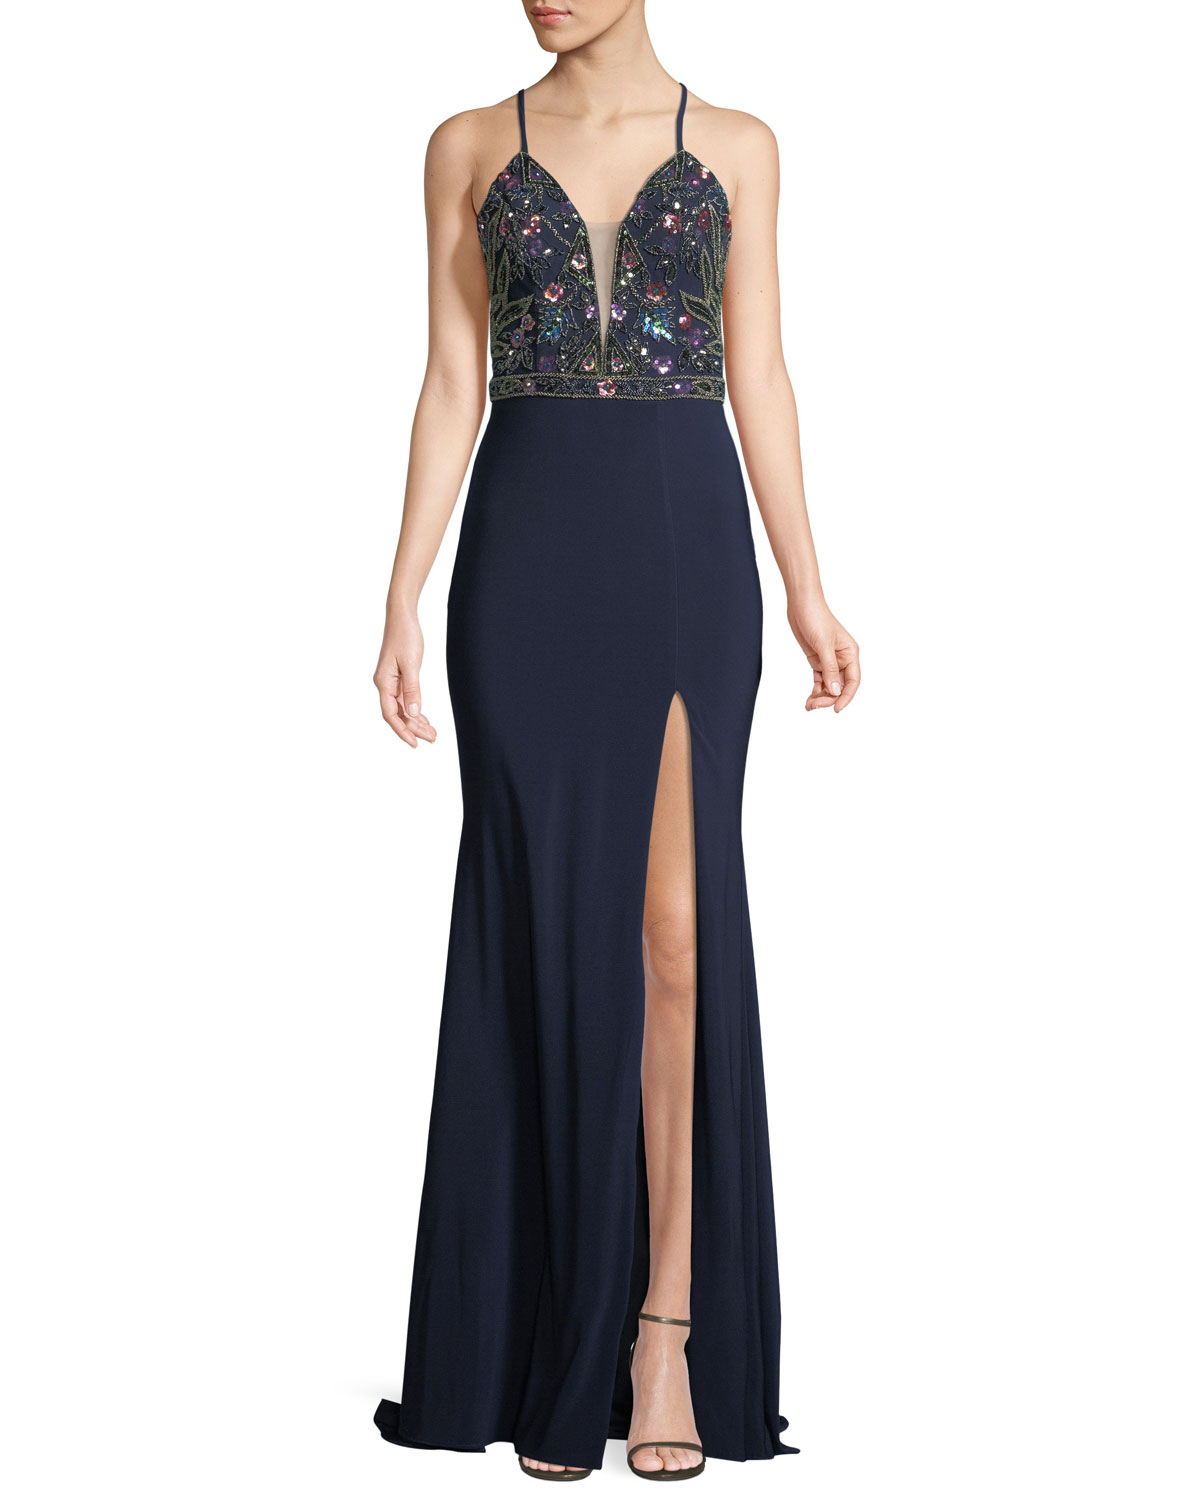 Faviana Embellished Lace-Up Jersey Gown | Neiman Marcus